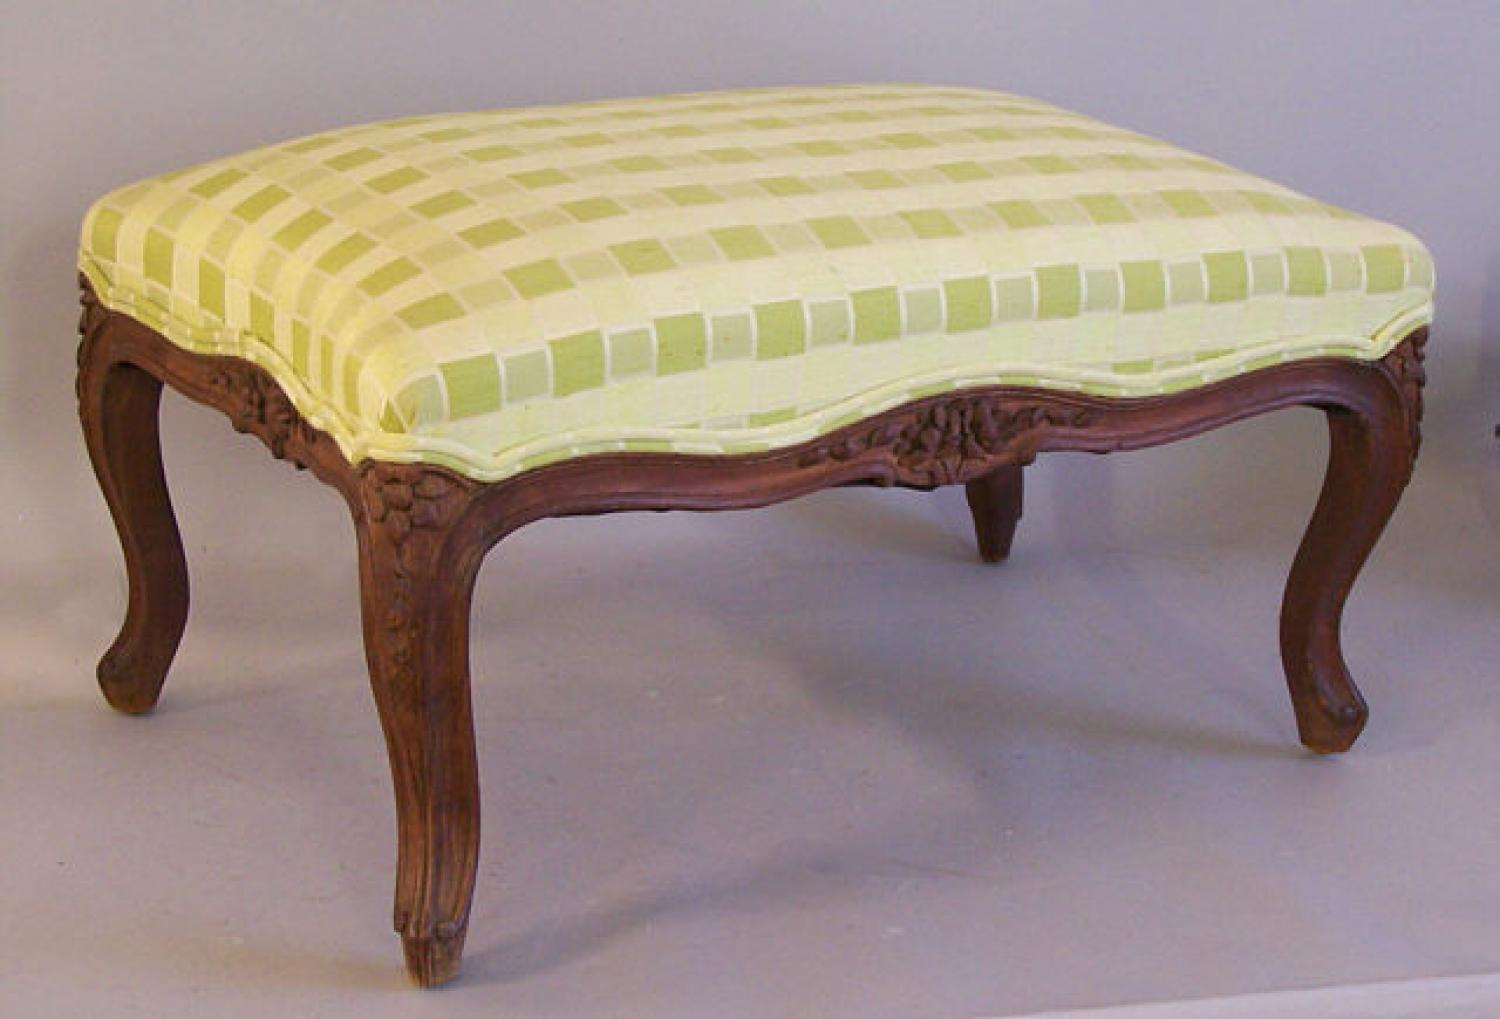 Antique French country carved walnut foot stool c1880